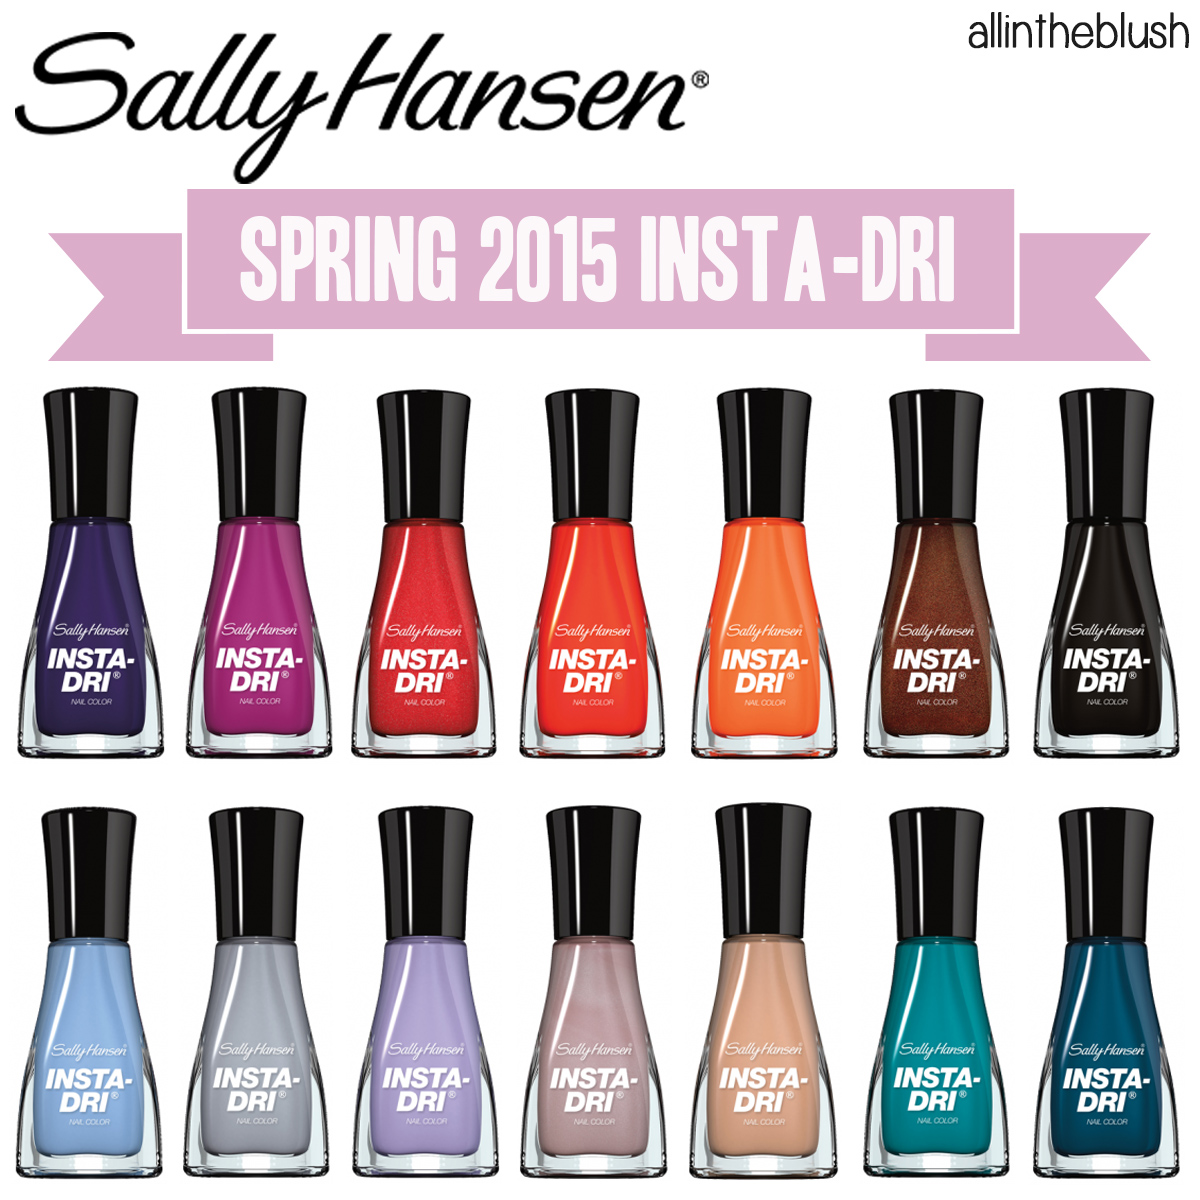 sally hansen insta dri spring 2015 nail colors all in the blush